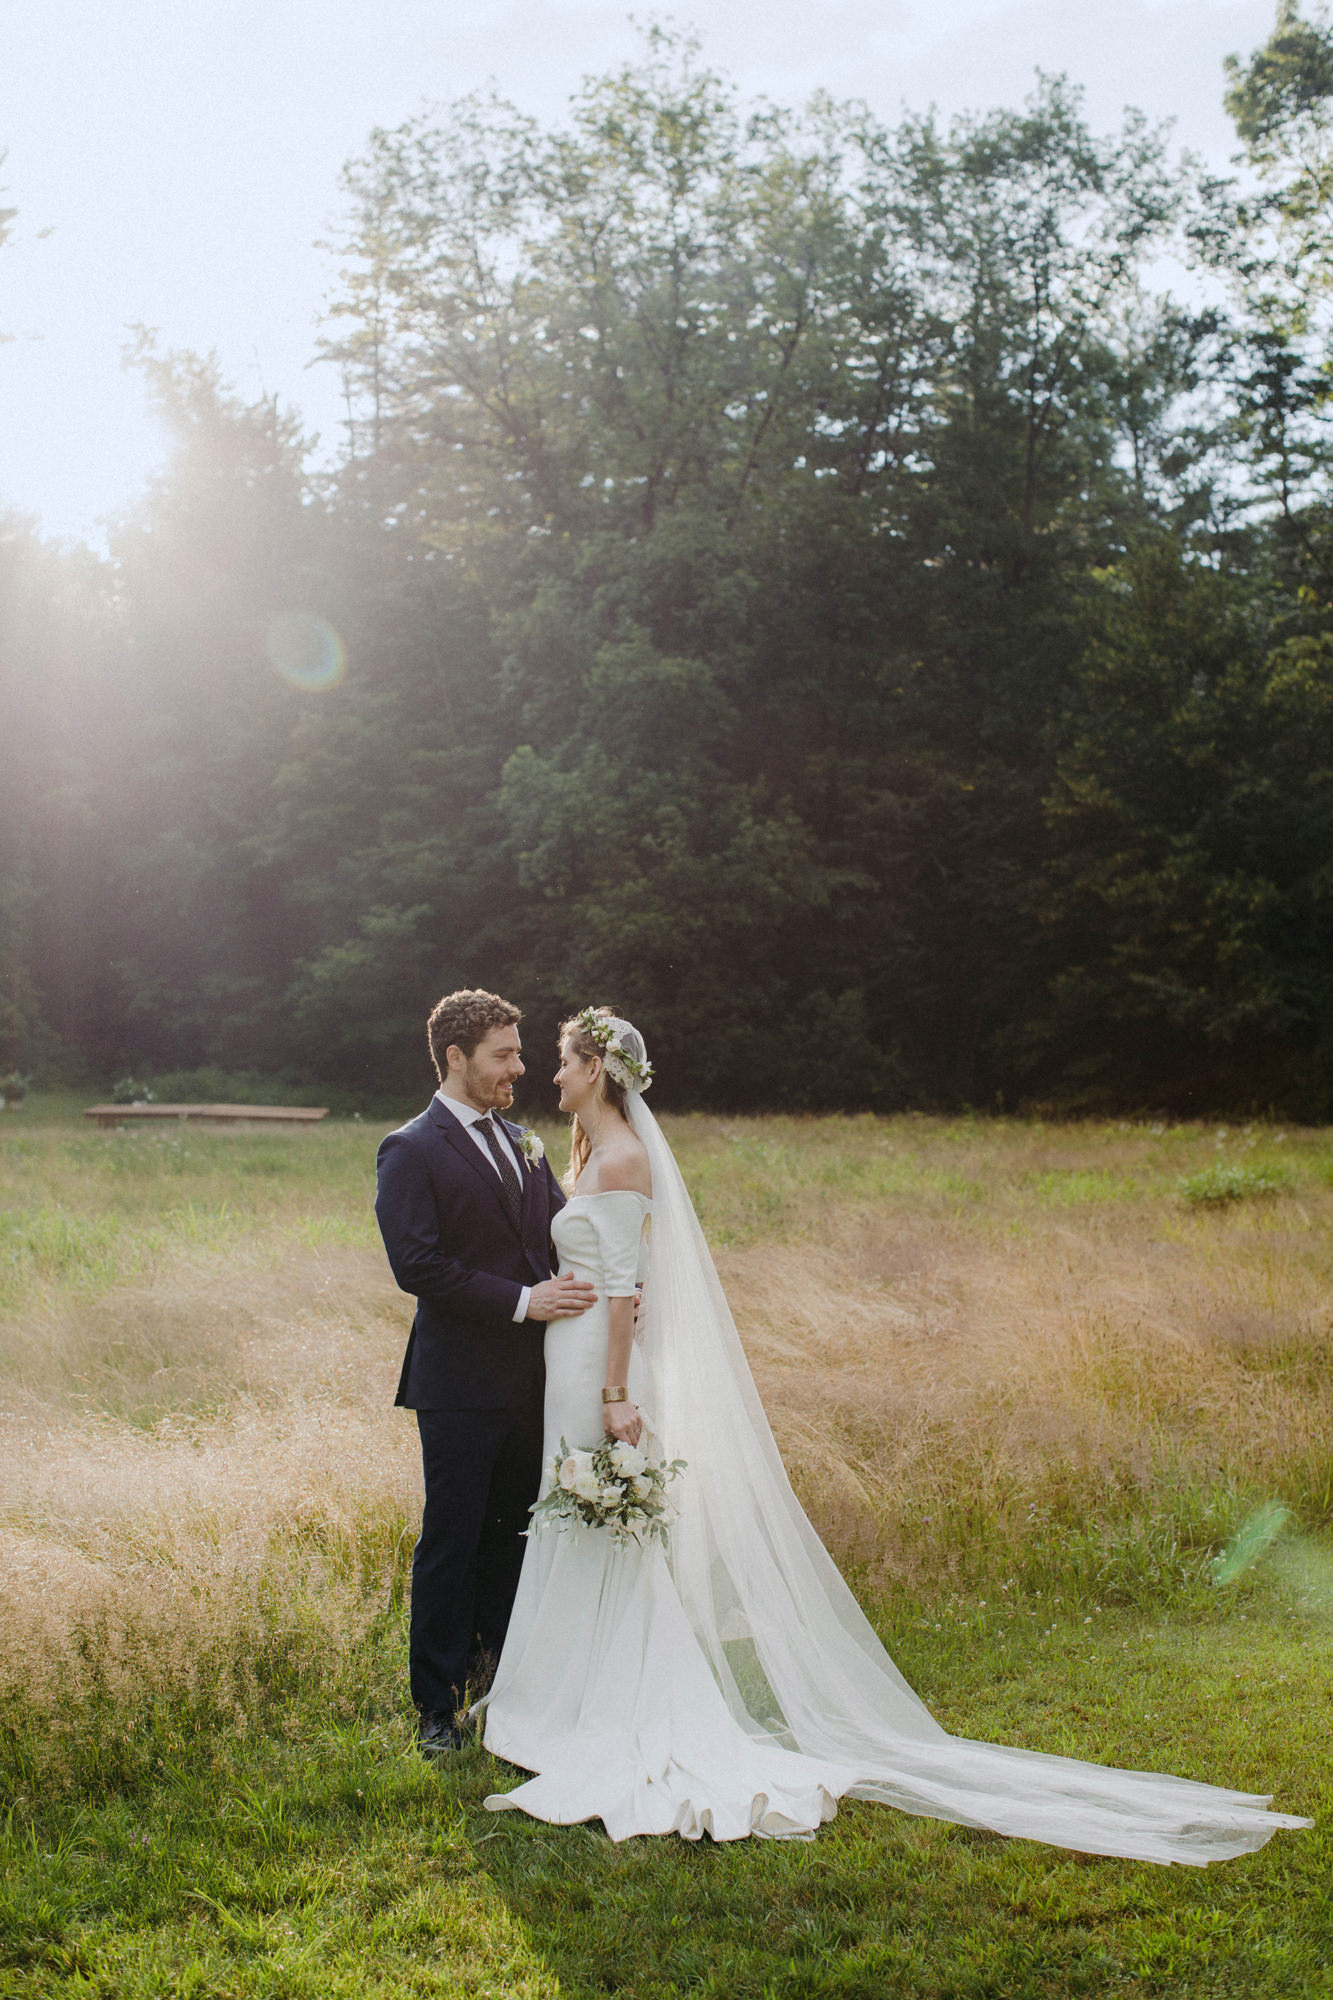 FOXFIREMOUNTAINHOUSE_CATSKILLS_WEDDING_SAMMBLAKE_PJW_0583.jpg